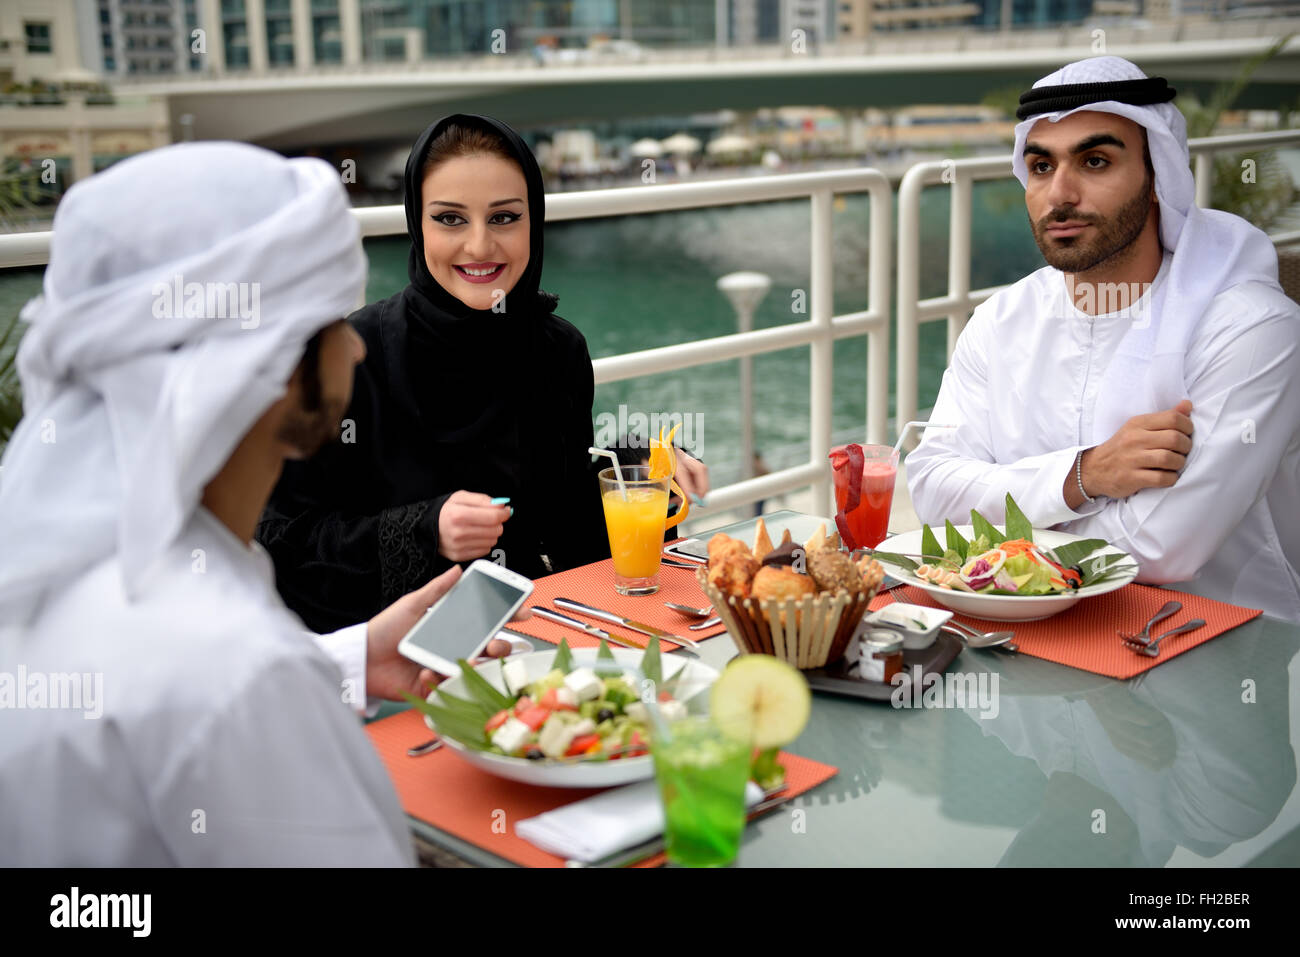 Young Emirati arab friends dining in a restaurant Stock Photo